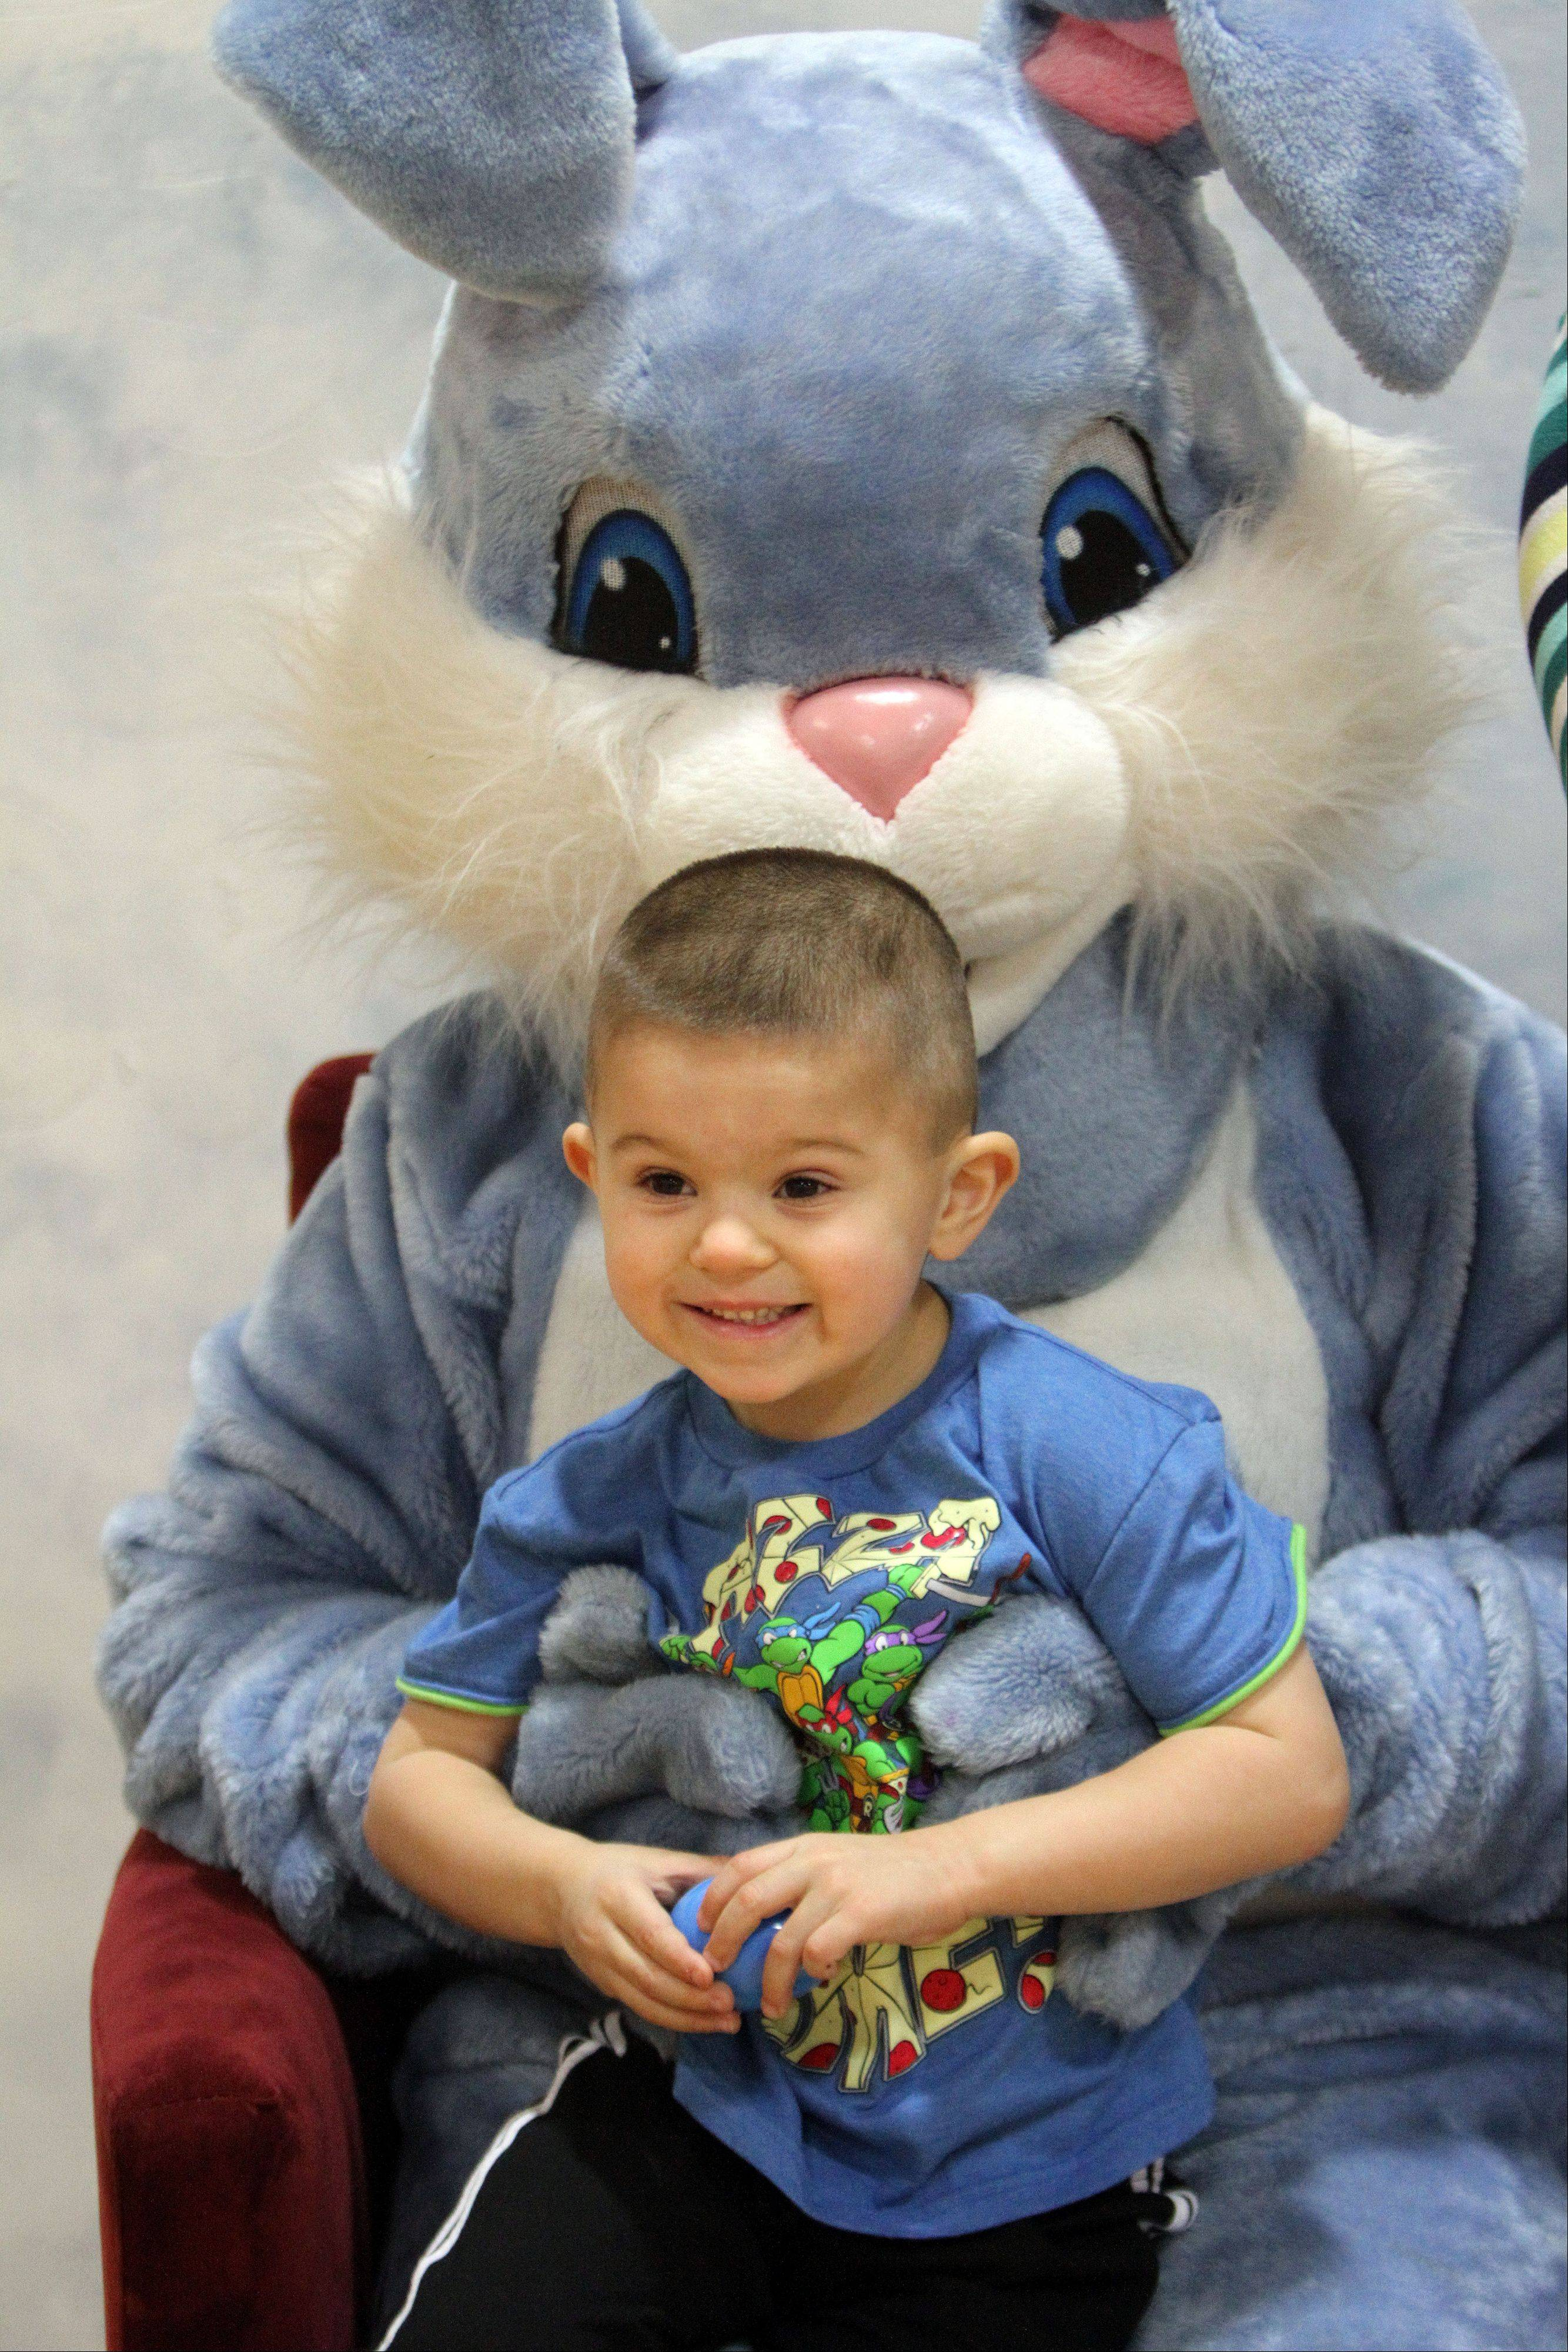 4-year-old Anthony Motisi of Round Lake gets his picture taken with the Mr. Rabbit during Mr. Rabbit's Spring Party at the Robert W. Rolek Community Center in Round Lake Beach Friday.